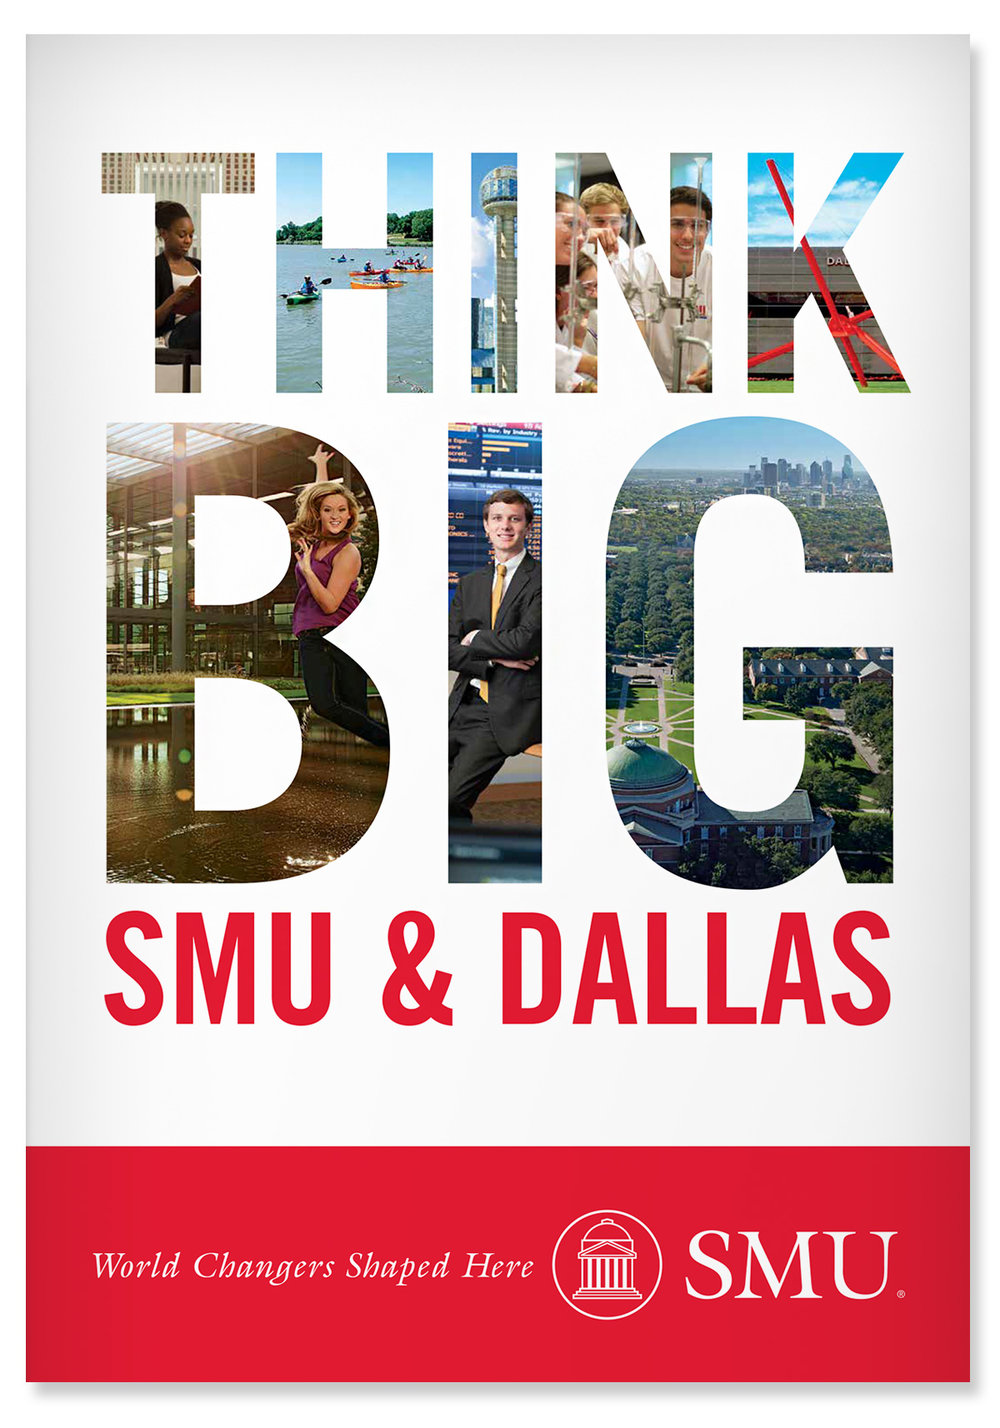 Think Big : SMU & Dallas Book